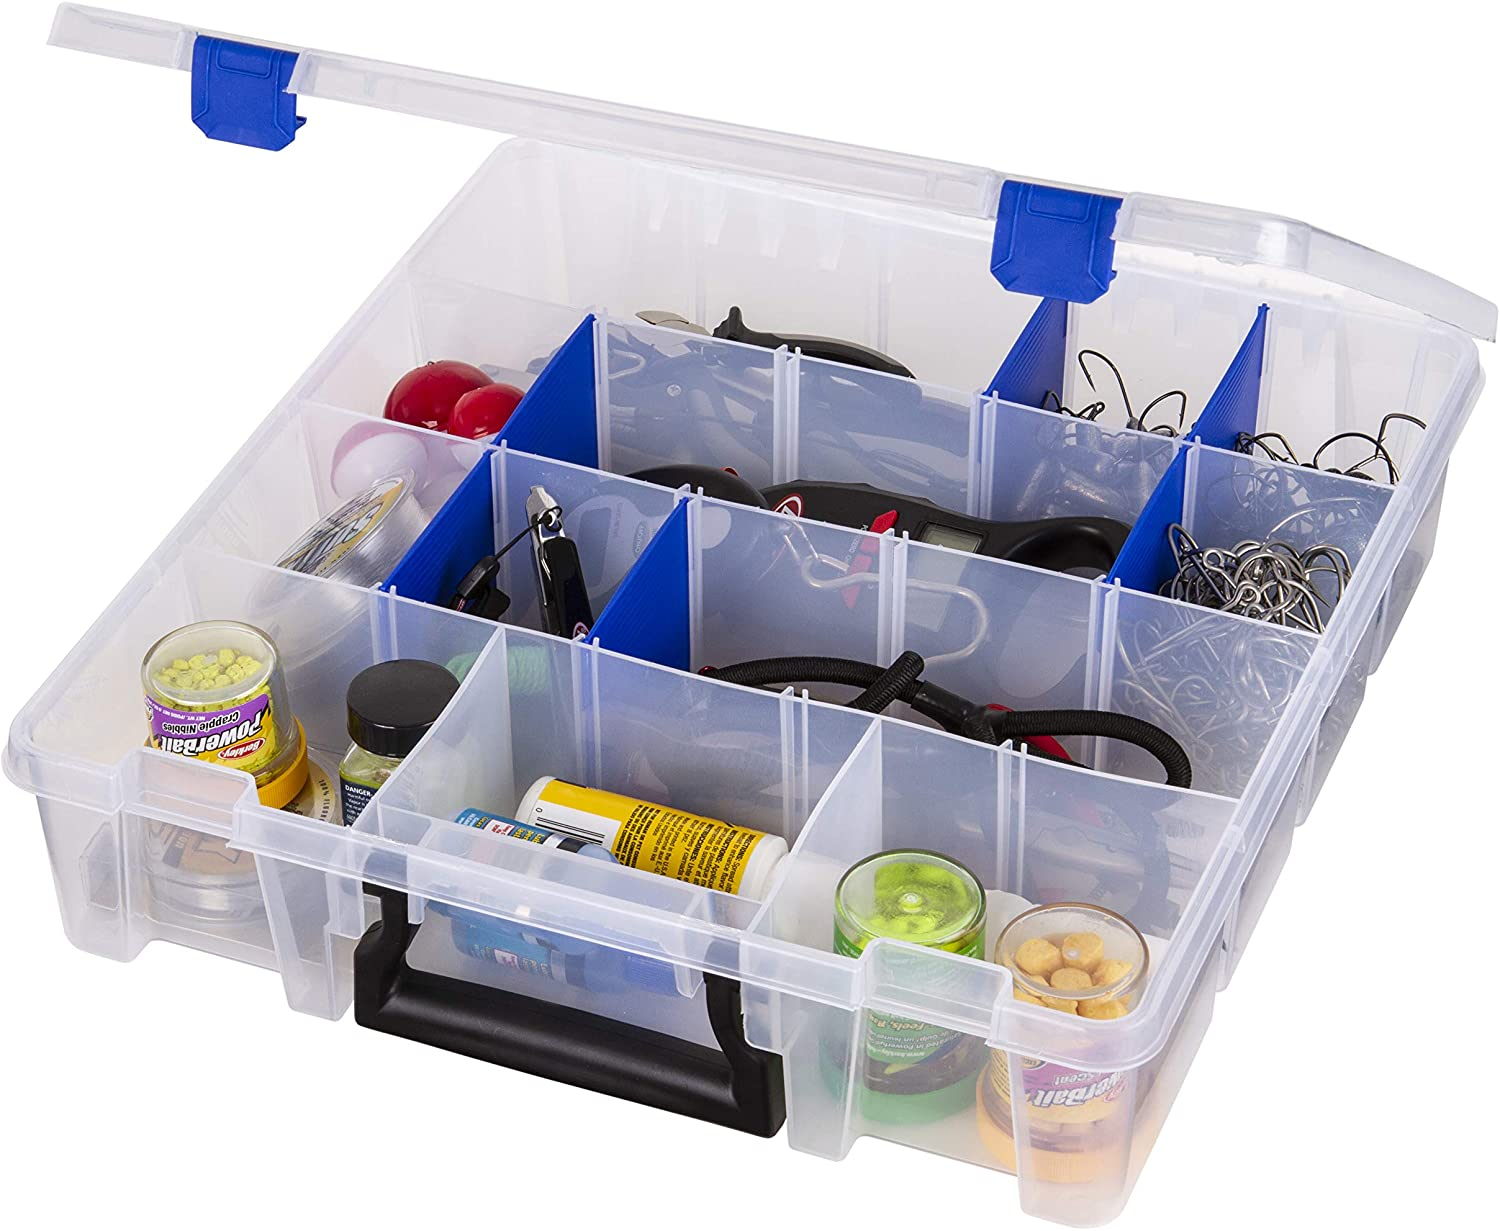 Flambeau Outdoors 9007 Tuff Tainer - 19 Compartments - Double Deep - Half Bulk (Includes (12) Zerust Dividers),Multi: Sports & Outdoors